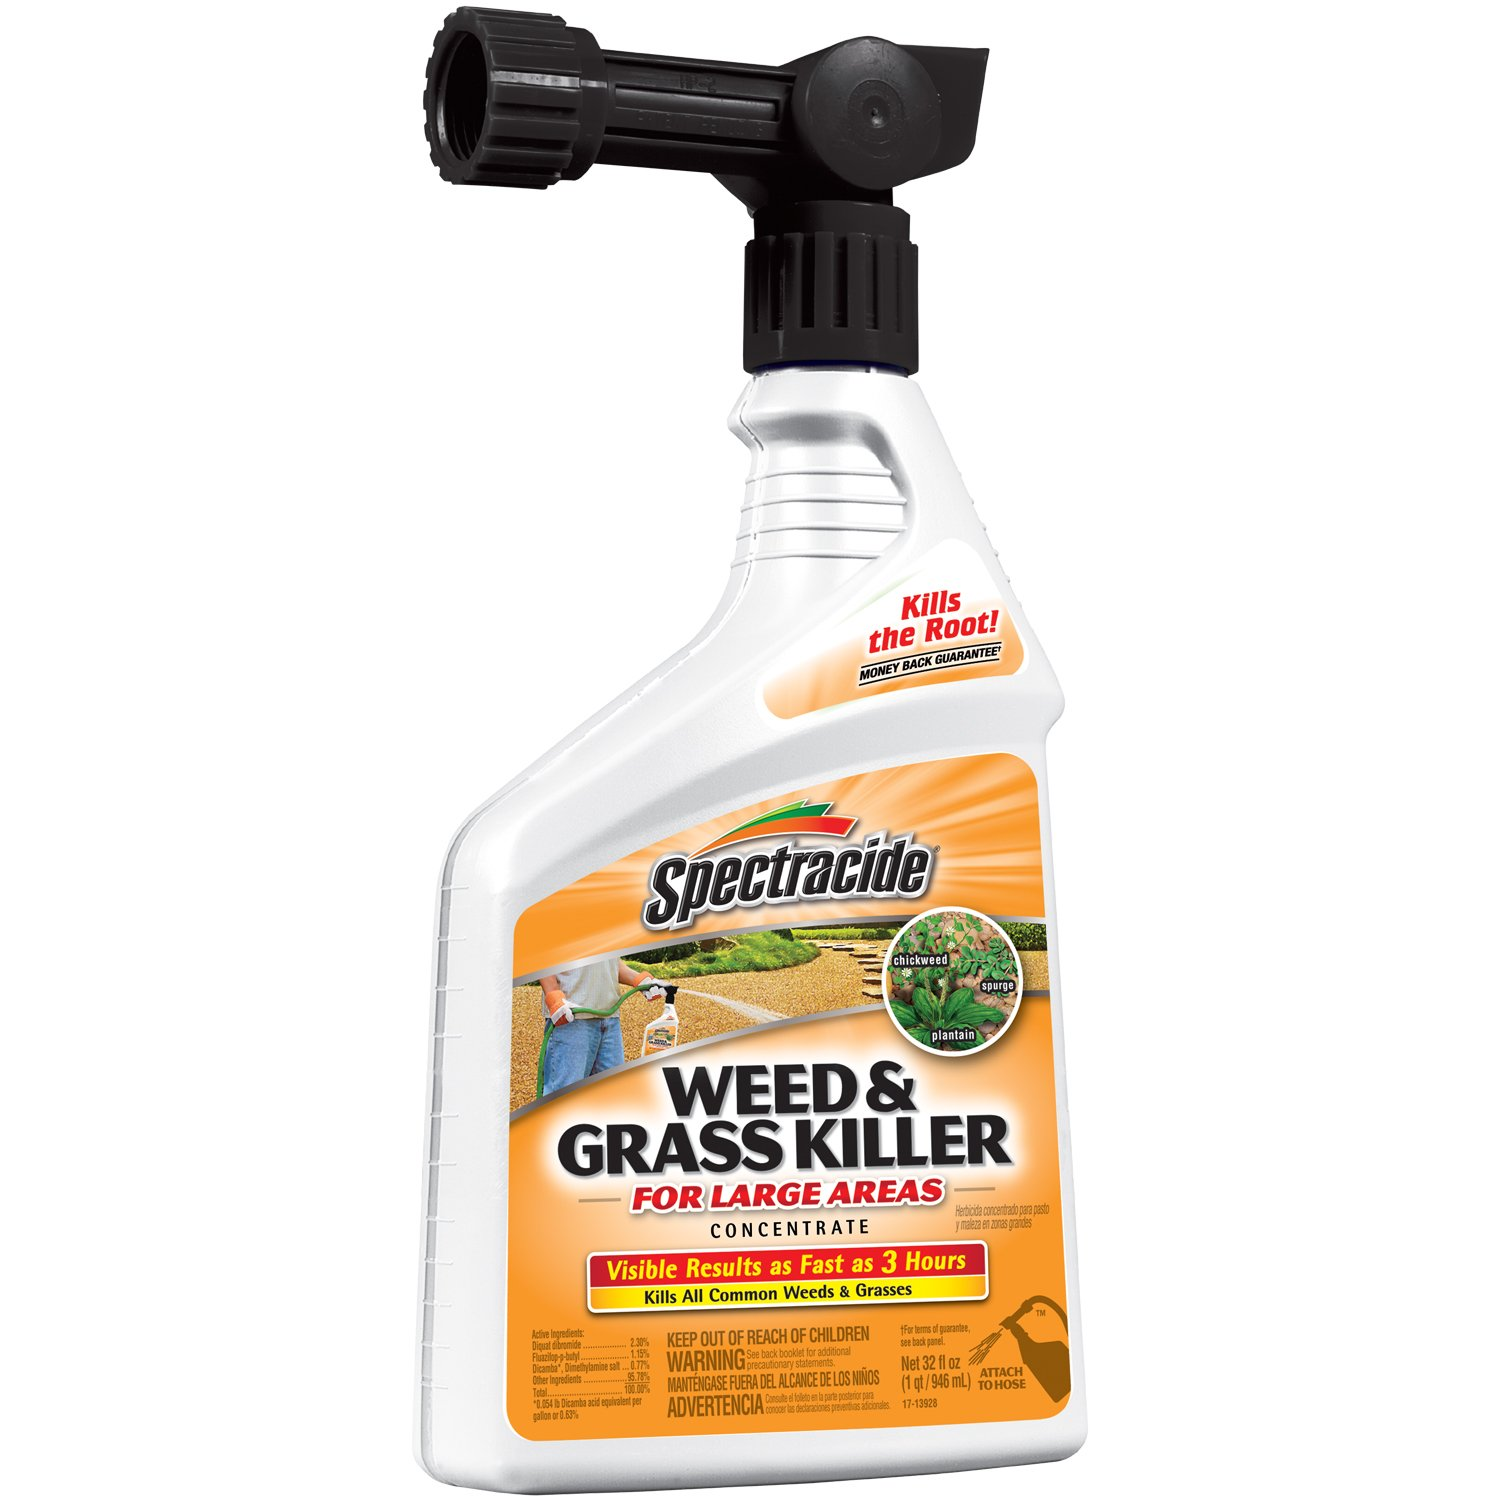 Spectracide Weed and Grass Killer Concentrate, Ready-to-Spray, 32oz., 1-PK